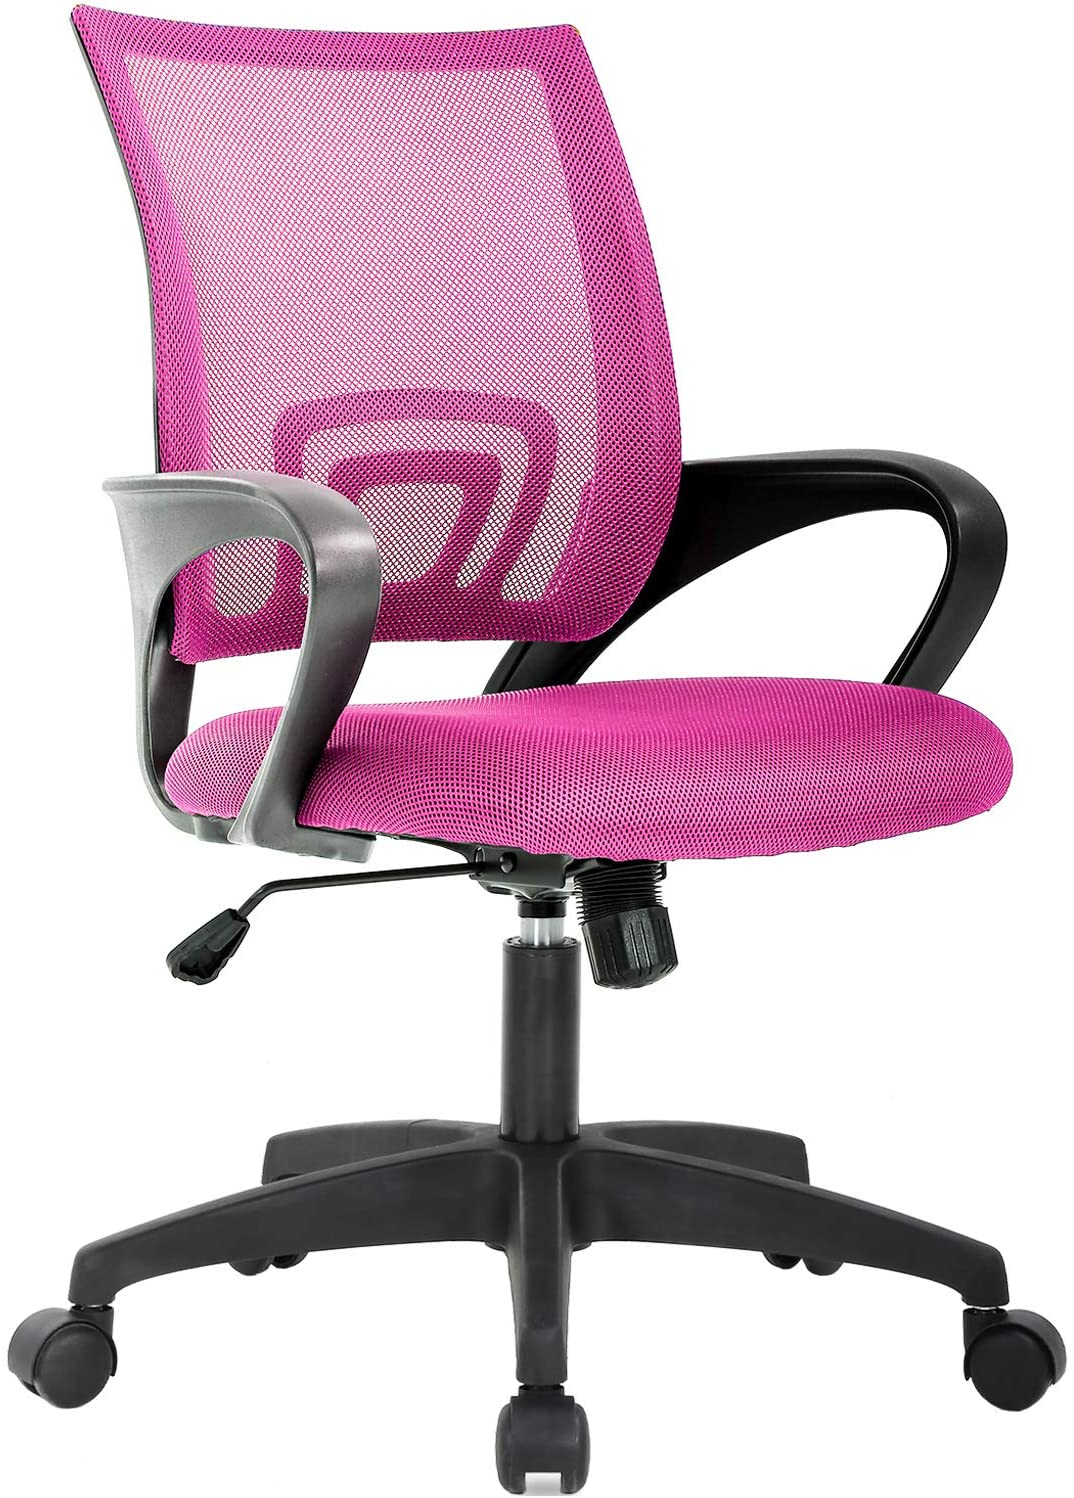 Home Office Chair Ergonomic Desk Chair Mesh Computer Chair with Lumbar Support Armrest Executive Rolling Swivel Adjustable Mid Back Task Chair for Women Adults (Pink)